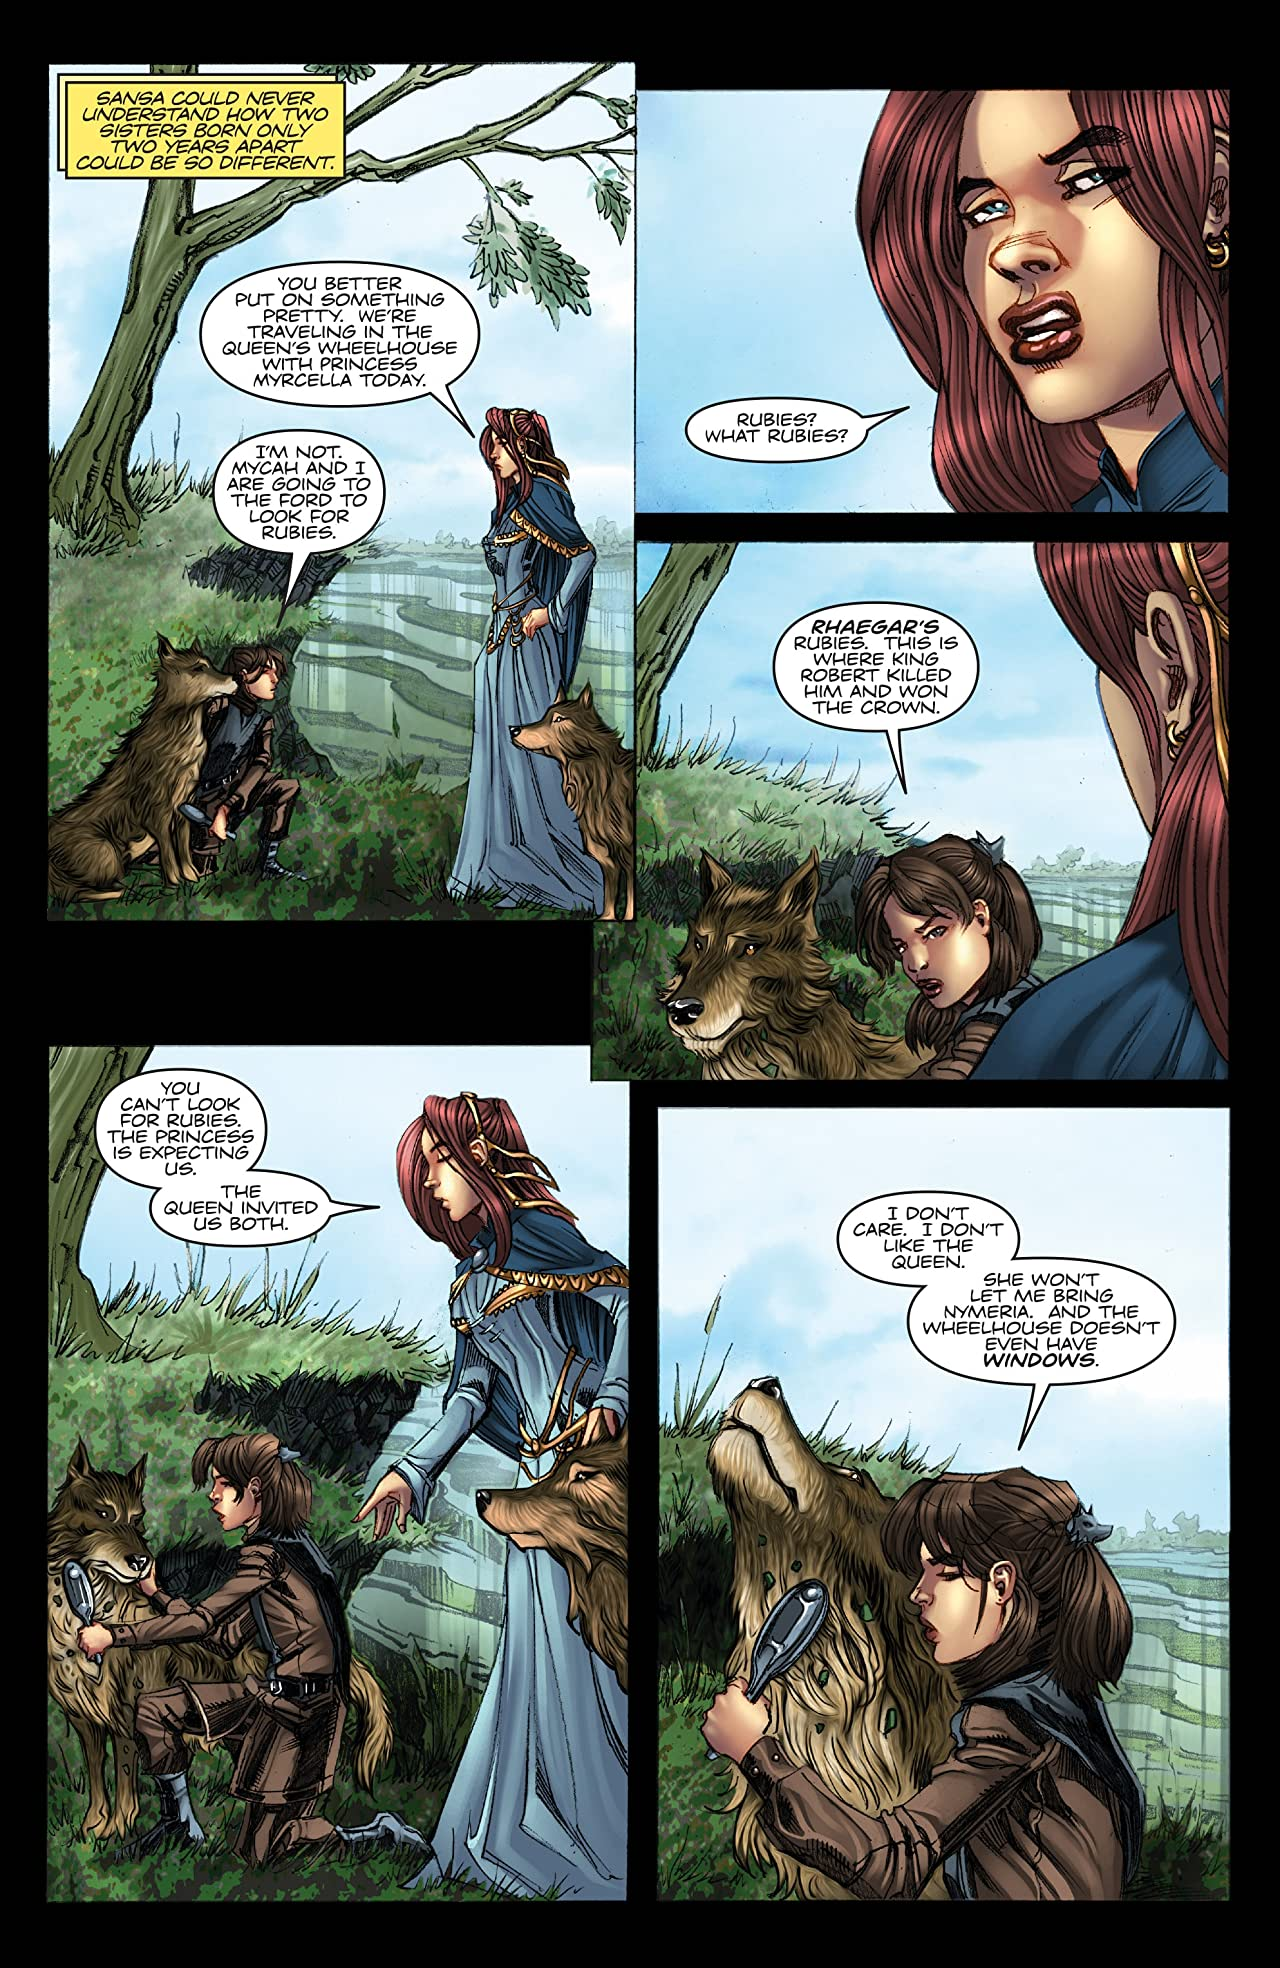 George R.R. Martin's A Game Of Thrones: The Comic Book #5